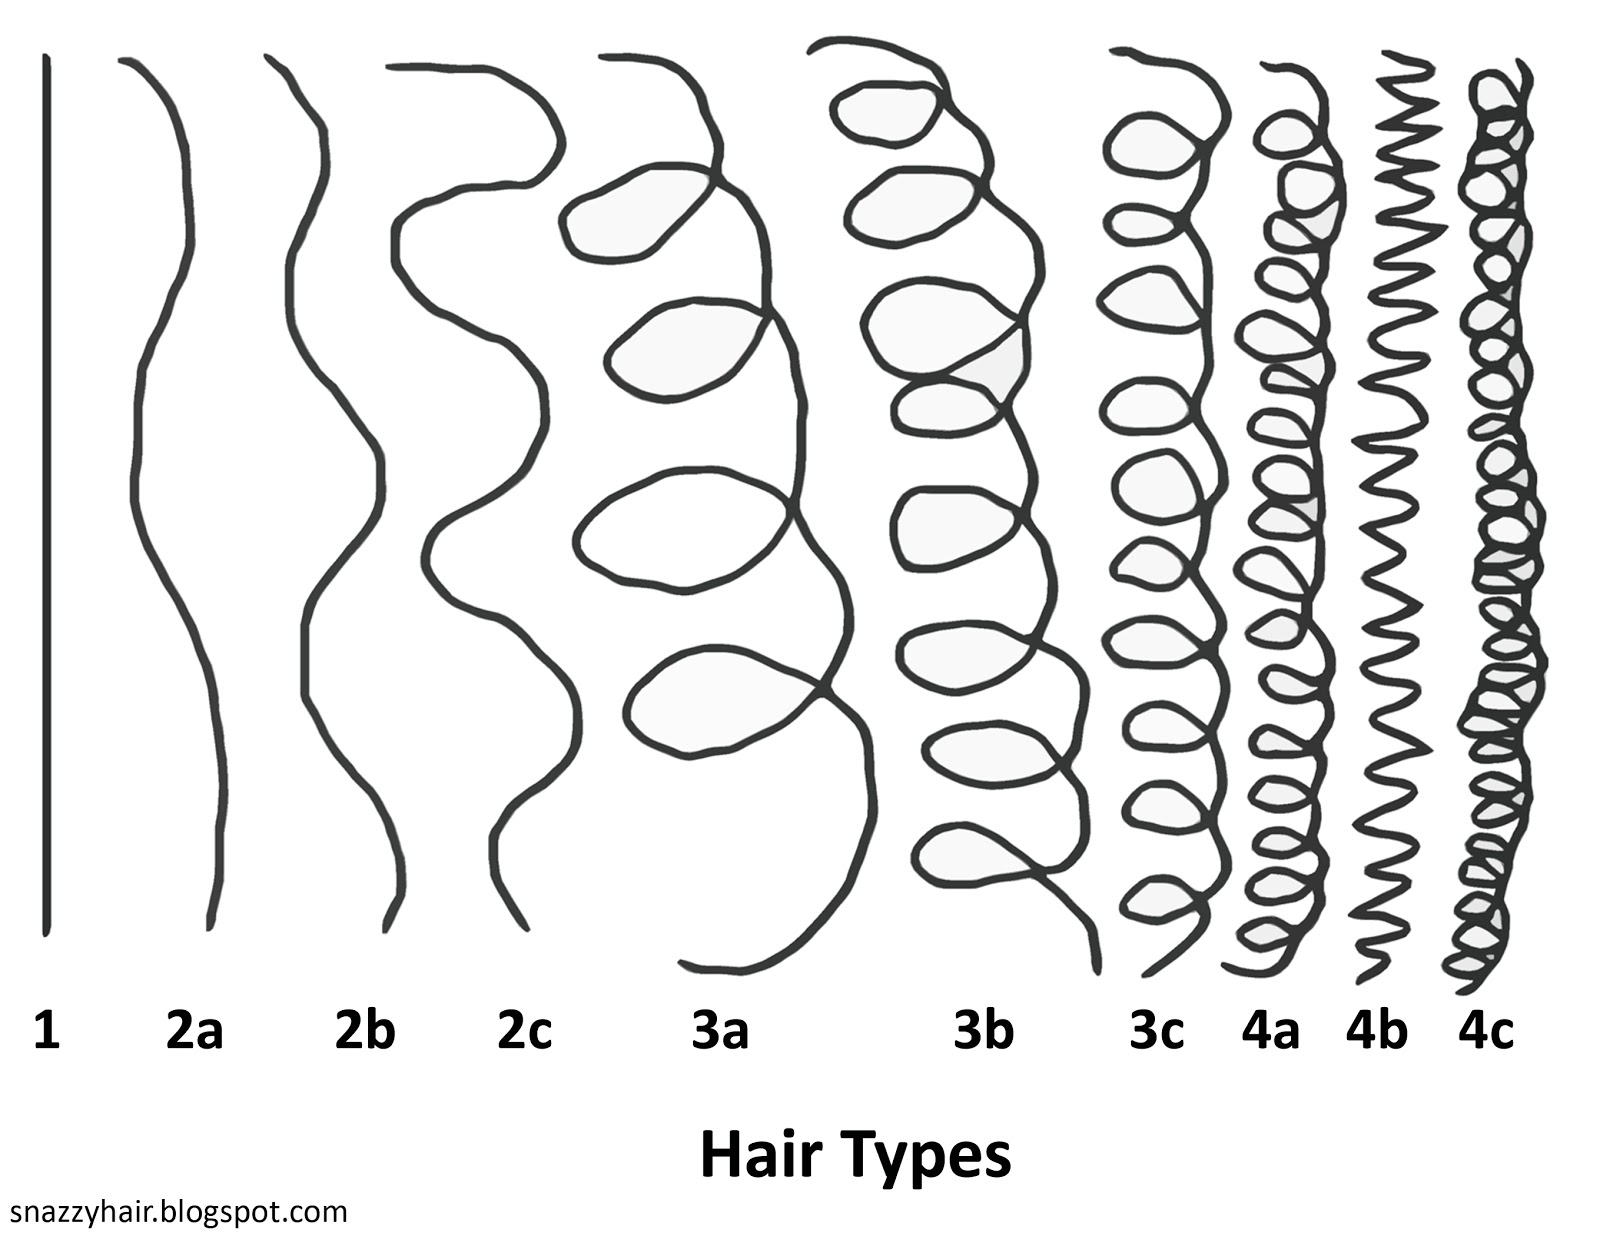 Sheila S Naptural Hair Journey What Is Your Hair Type